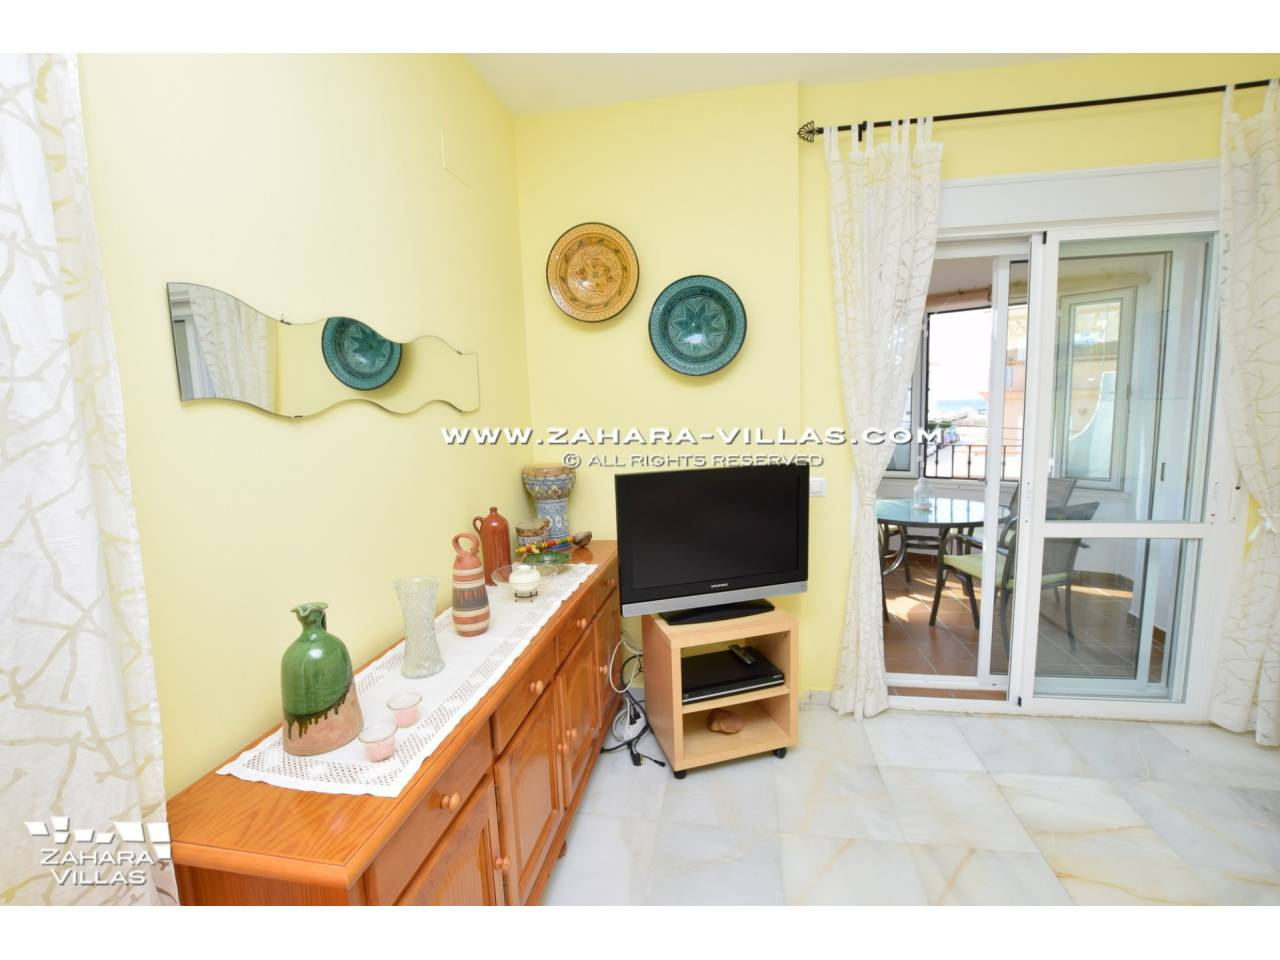 Imagen 12 de Amazing Apartment for sale in Zahara de los Atunes